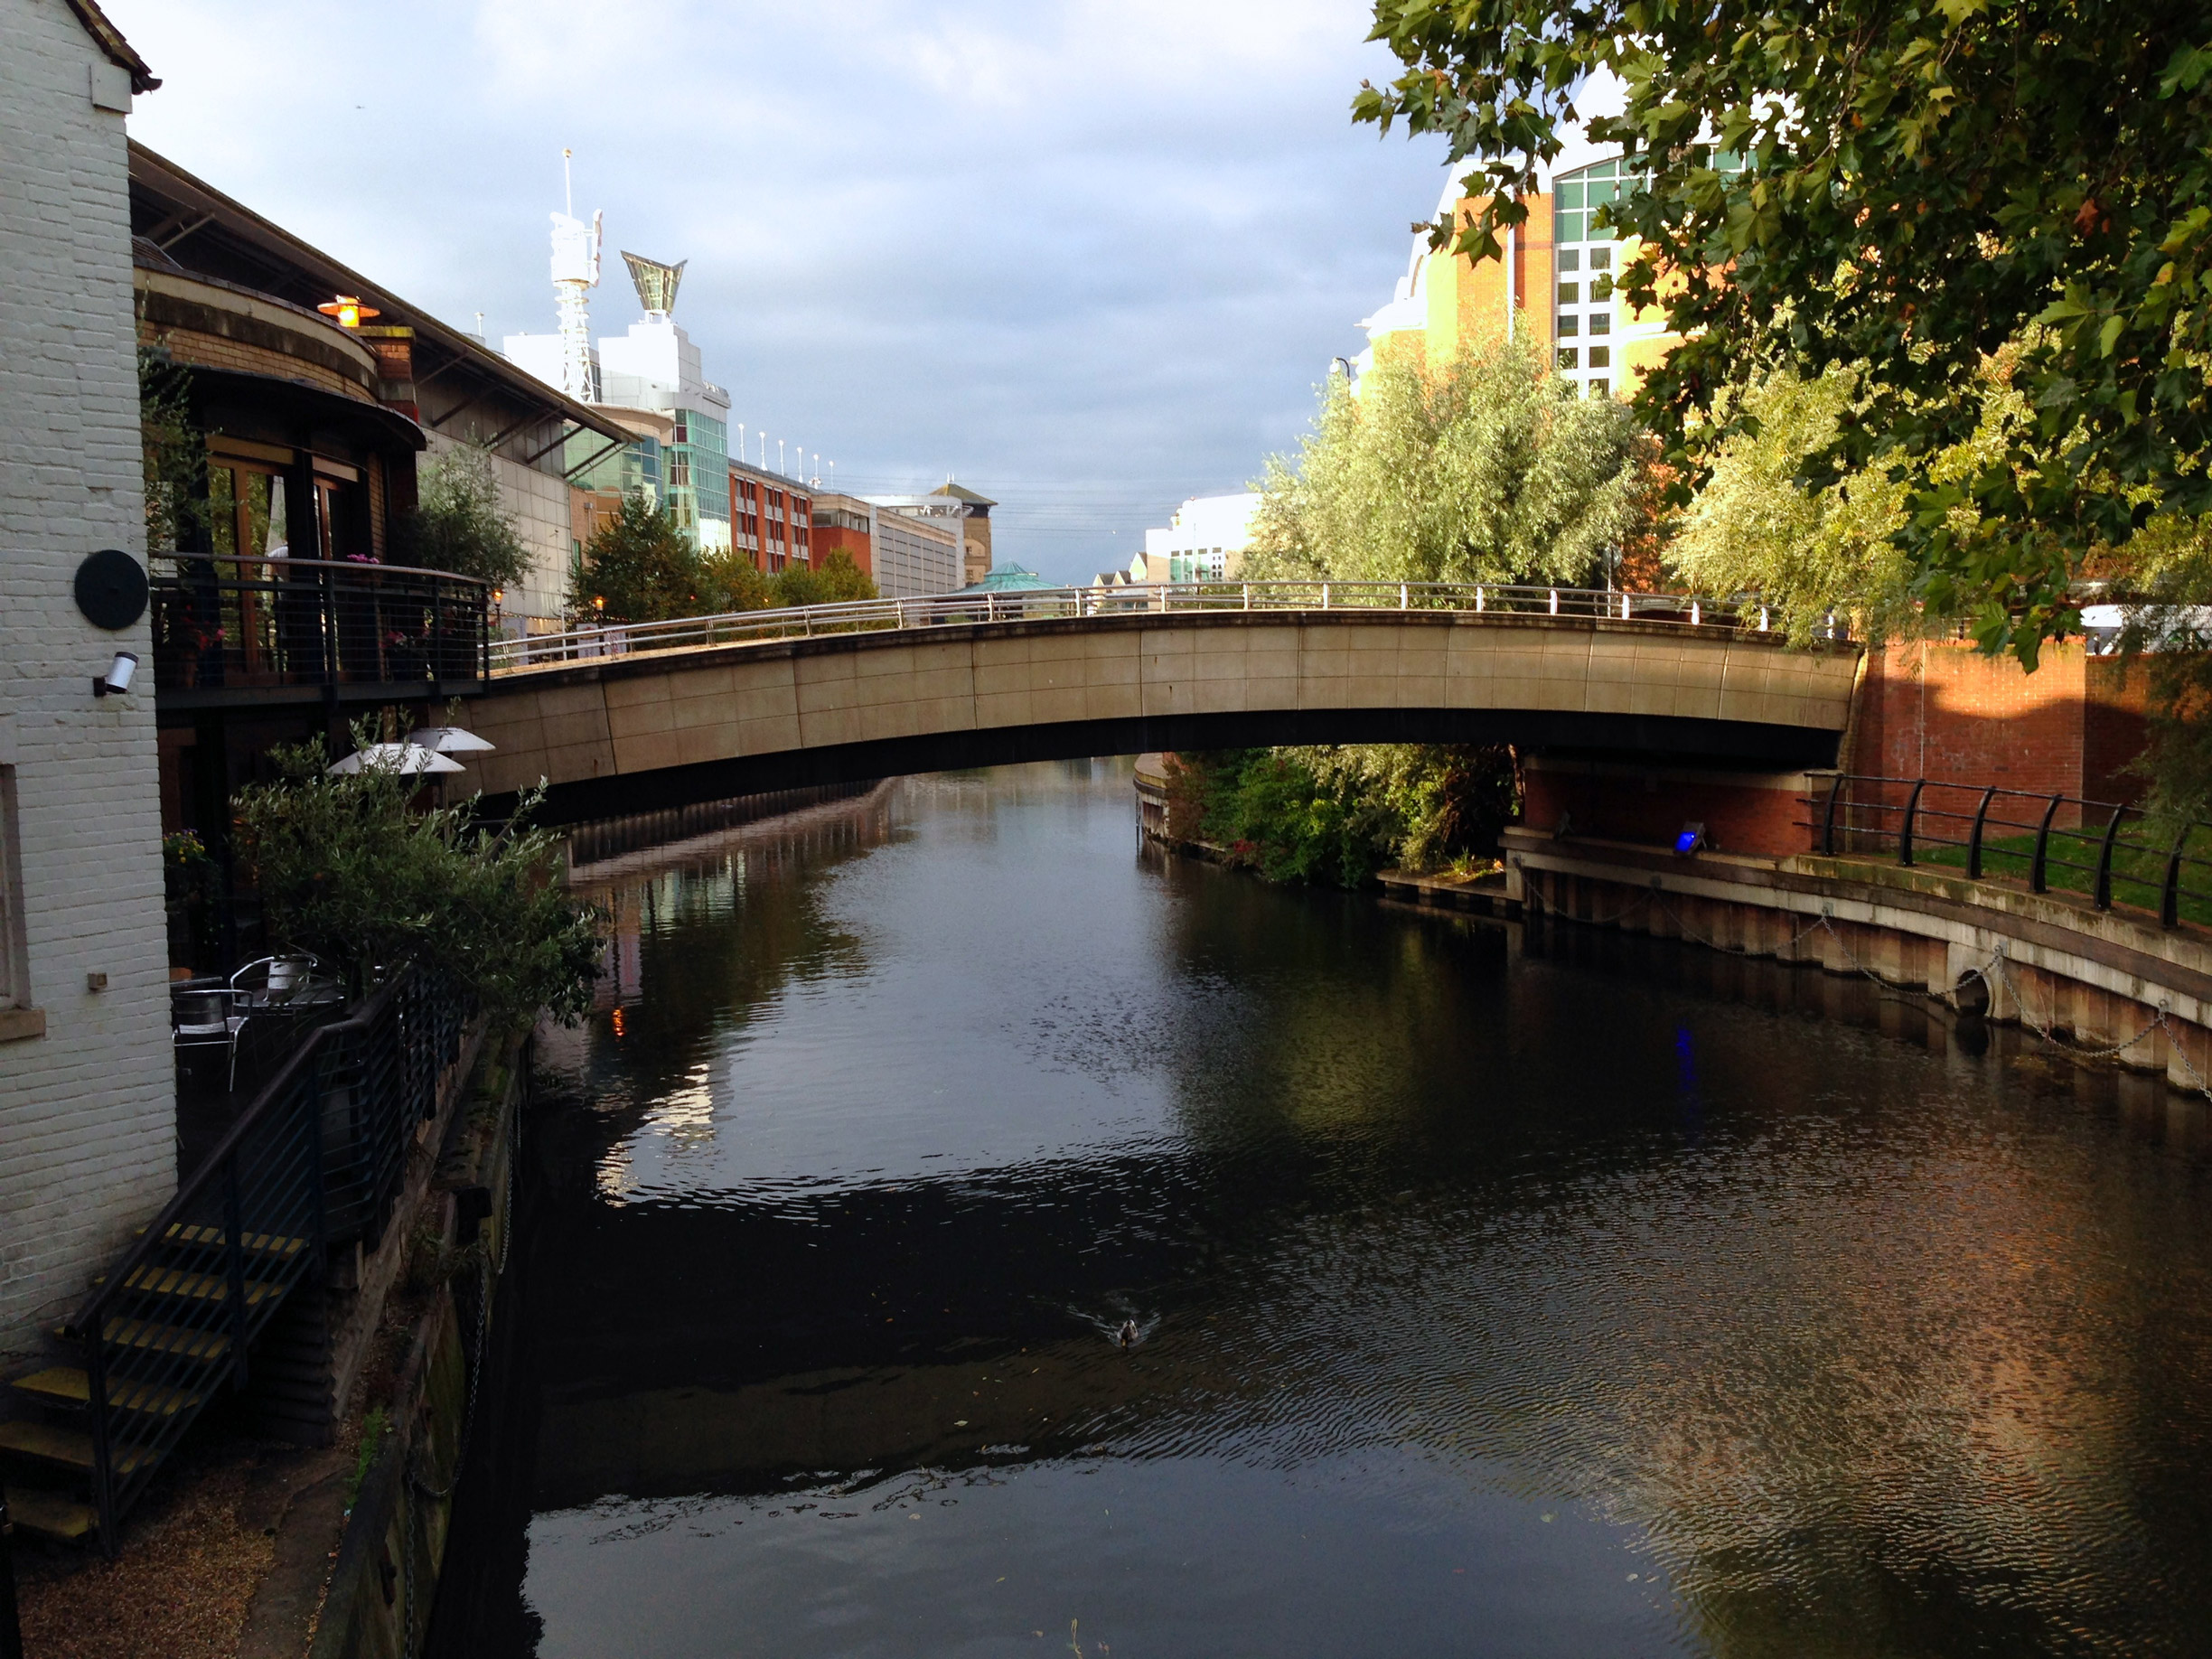 Canals in Reading - Leads to the Oracle shopping center